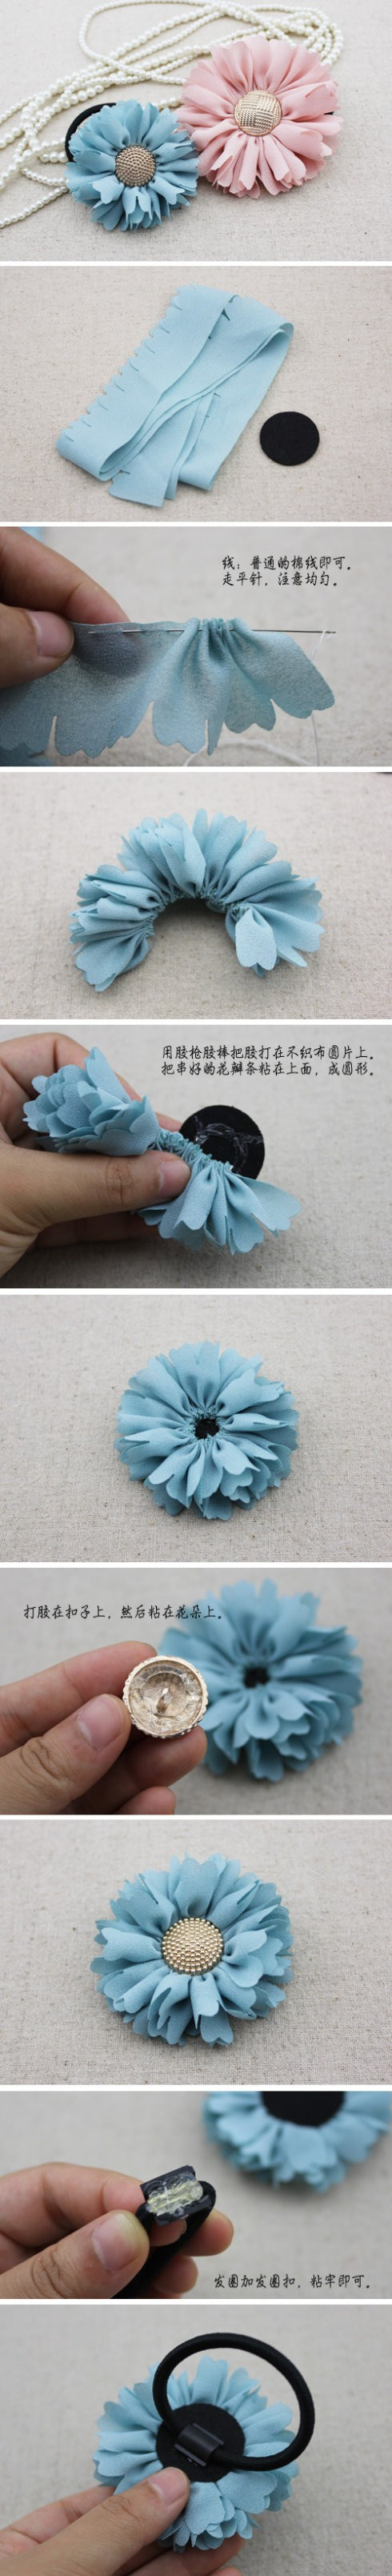 How to make beautiful DIY sun flower hair bands step by step tutorial instructions